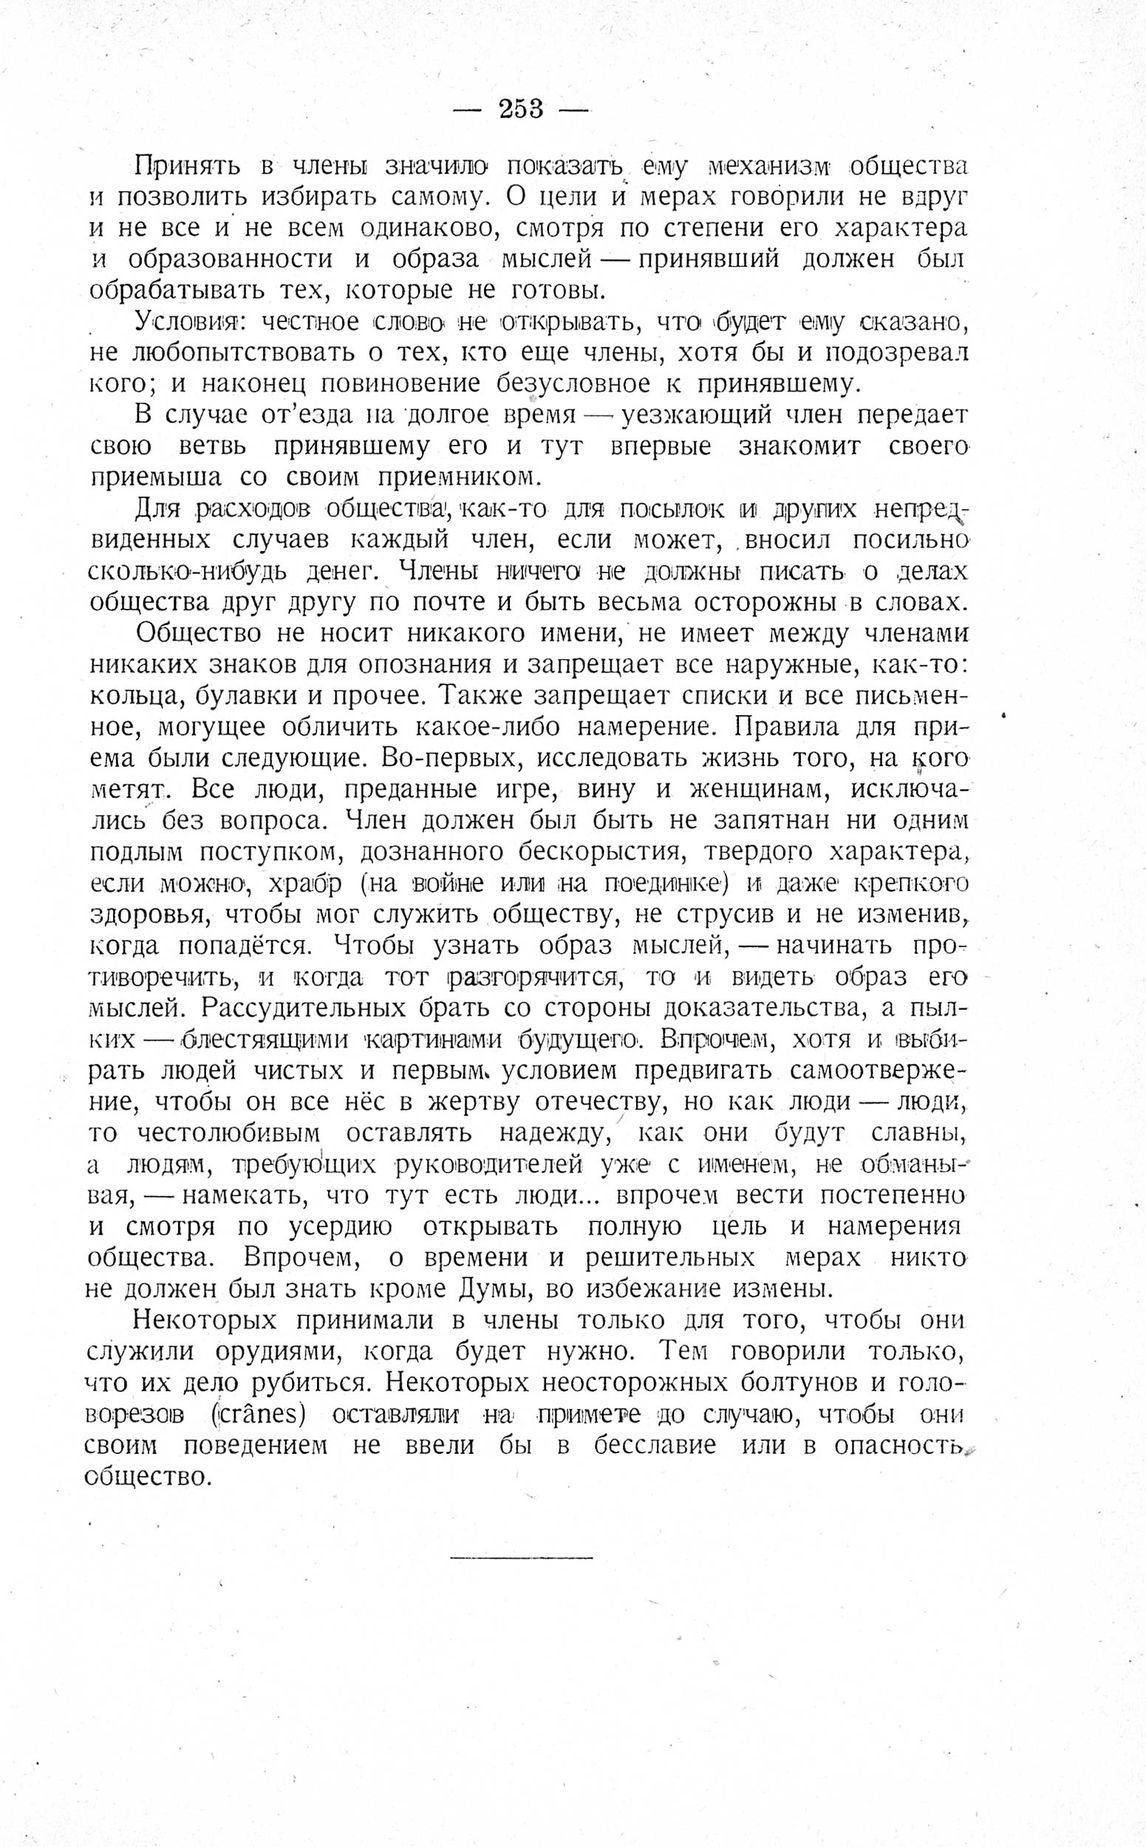 http://elib.shpl.ru/pages/625836/zooms/7